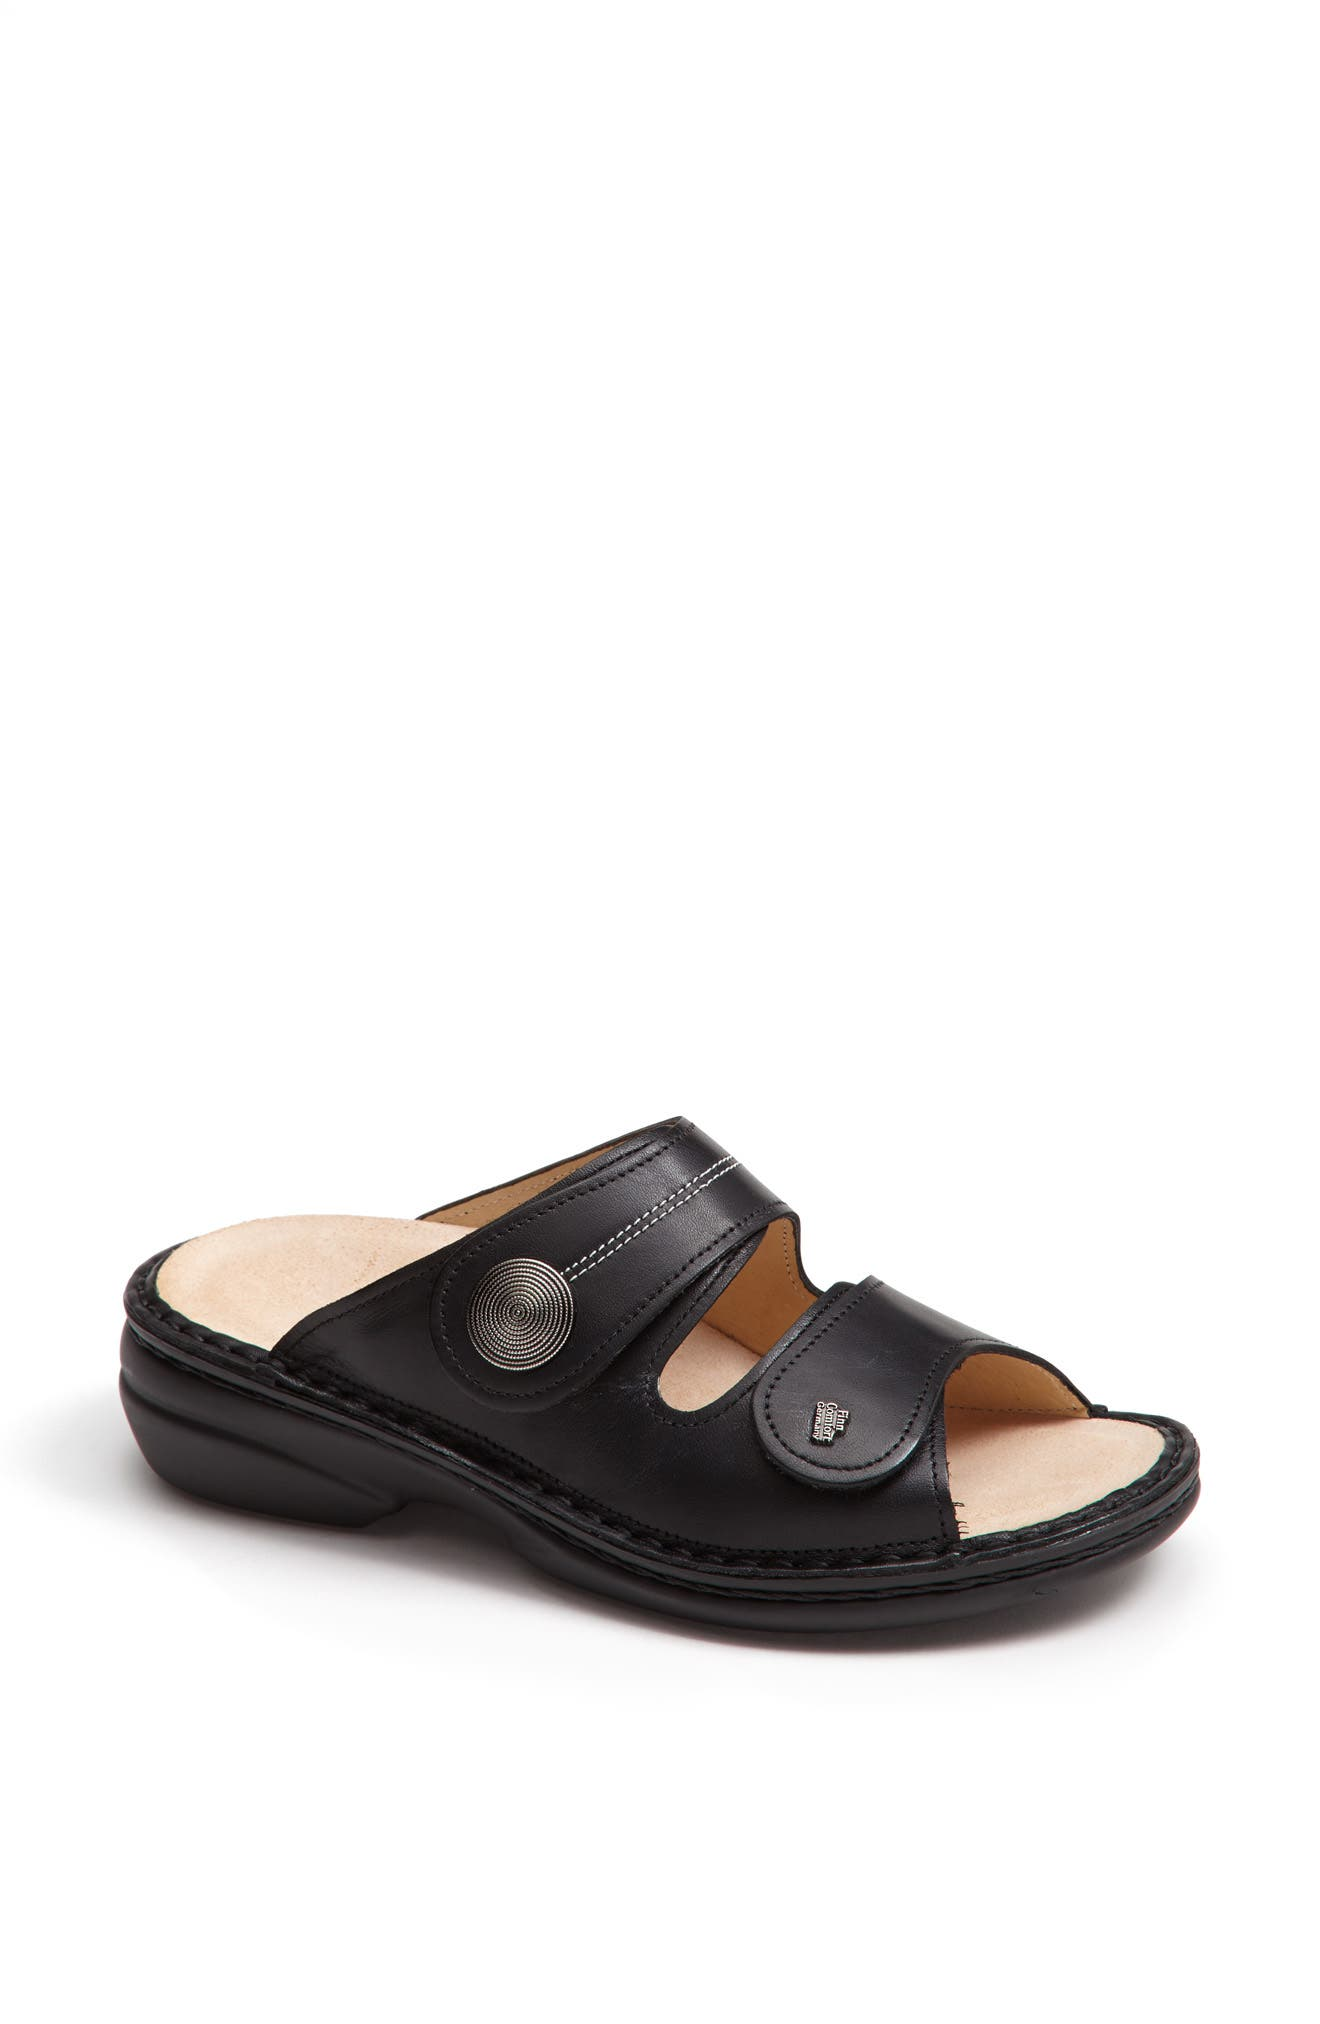 'Sansibar' Sandal,                             Alternate thumbnail 4, color,                             BLACK